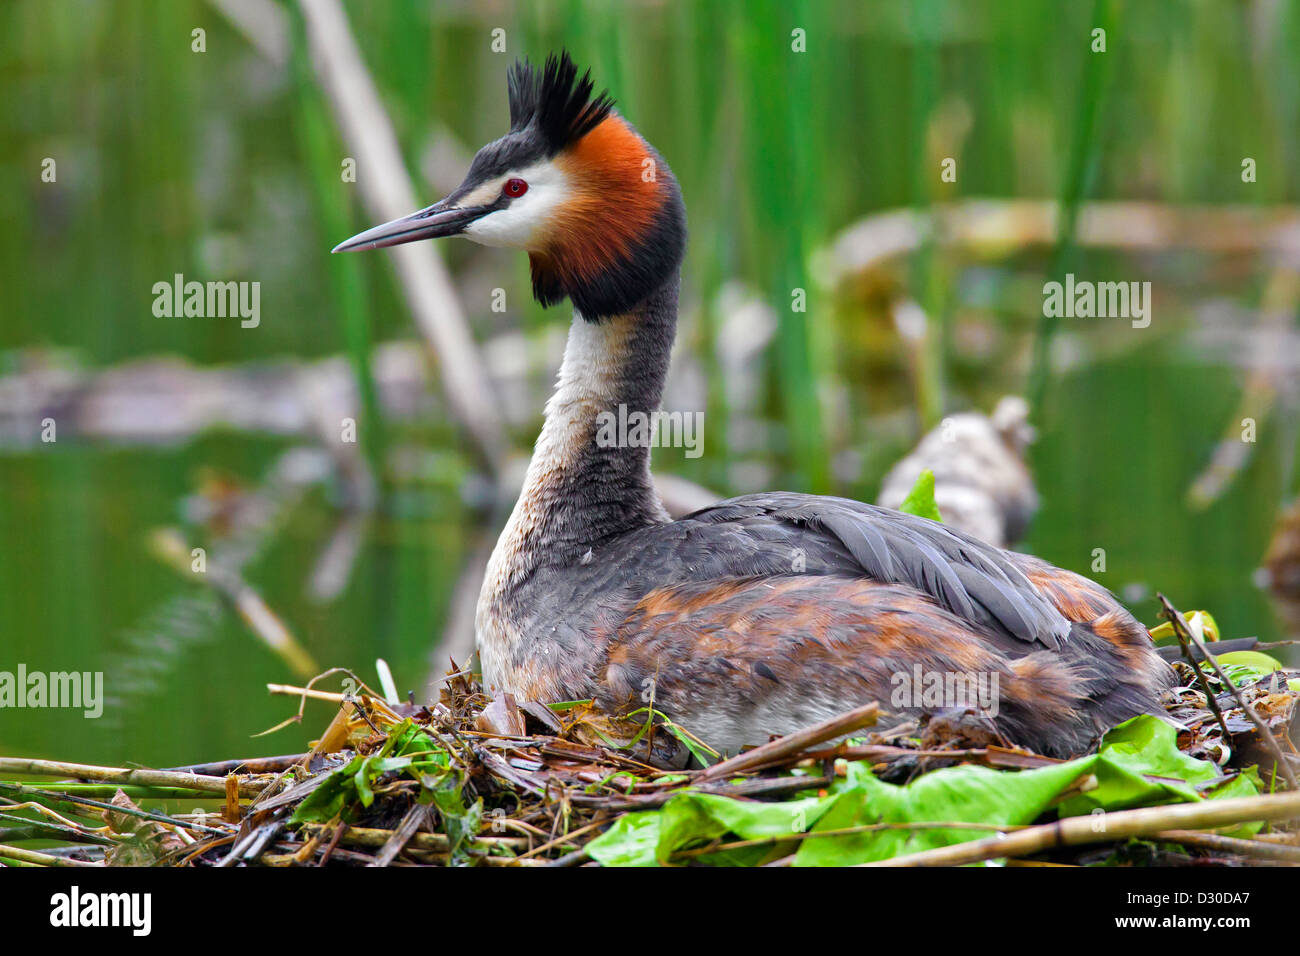 Great Crested Grebe (Podiceps cristatus) breeding on nest in lake - Stock Image